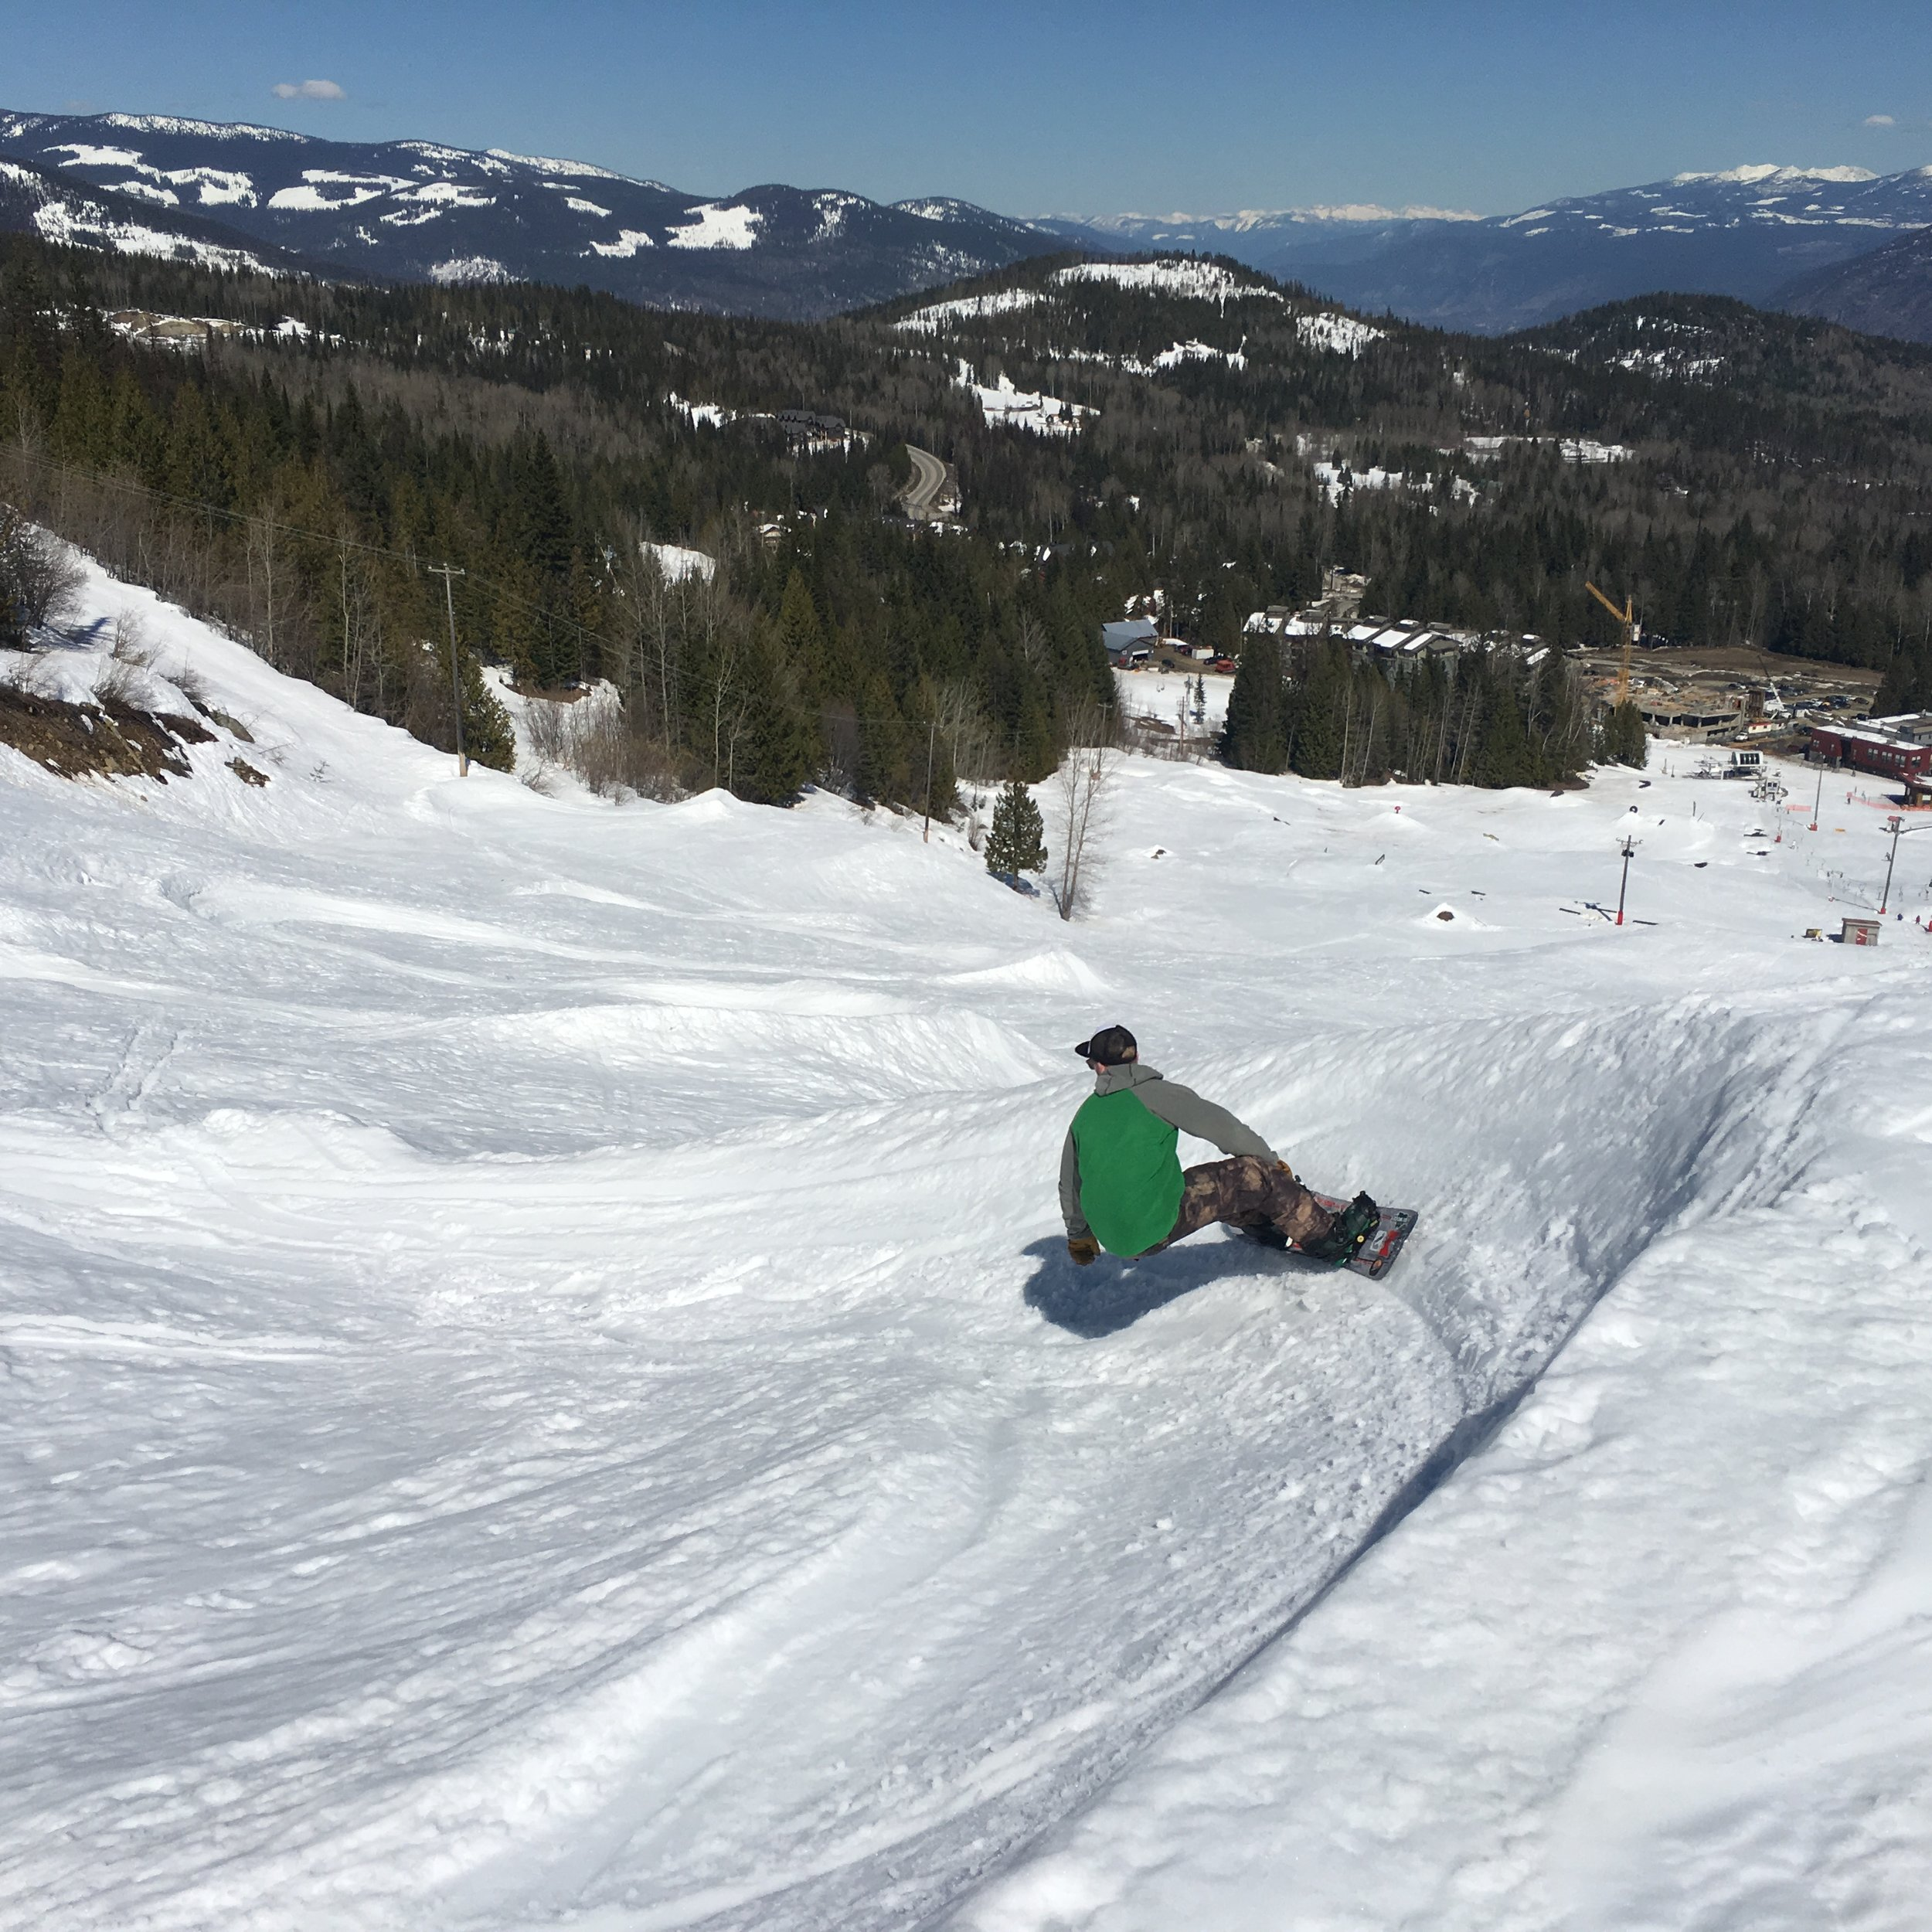 Brian smashing down the banked slalom at Red Mountain Resort  Photo: Zach Husted